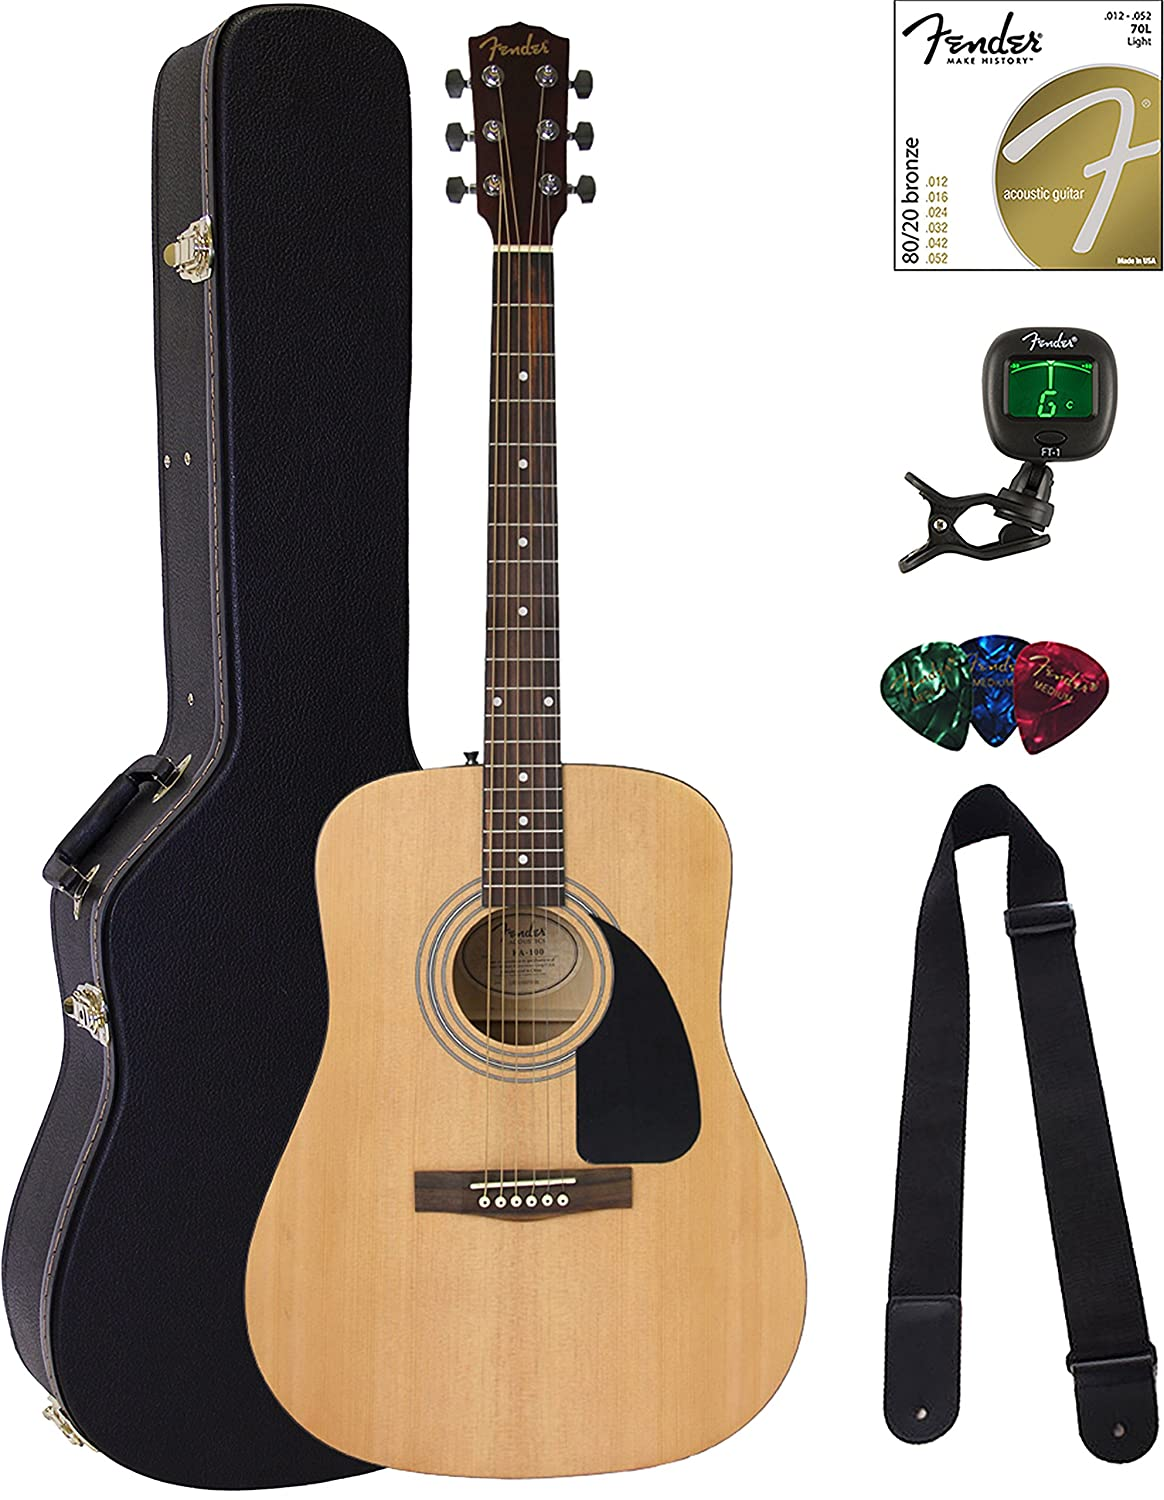 Fender FA-100 Dreadnought Acoustic Guitar - Sunburst Bundle with Hard Case, Tuner, Strings, Strap, and Picks 0950816032-COMBO-FGPAC3